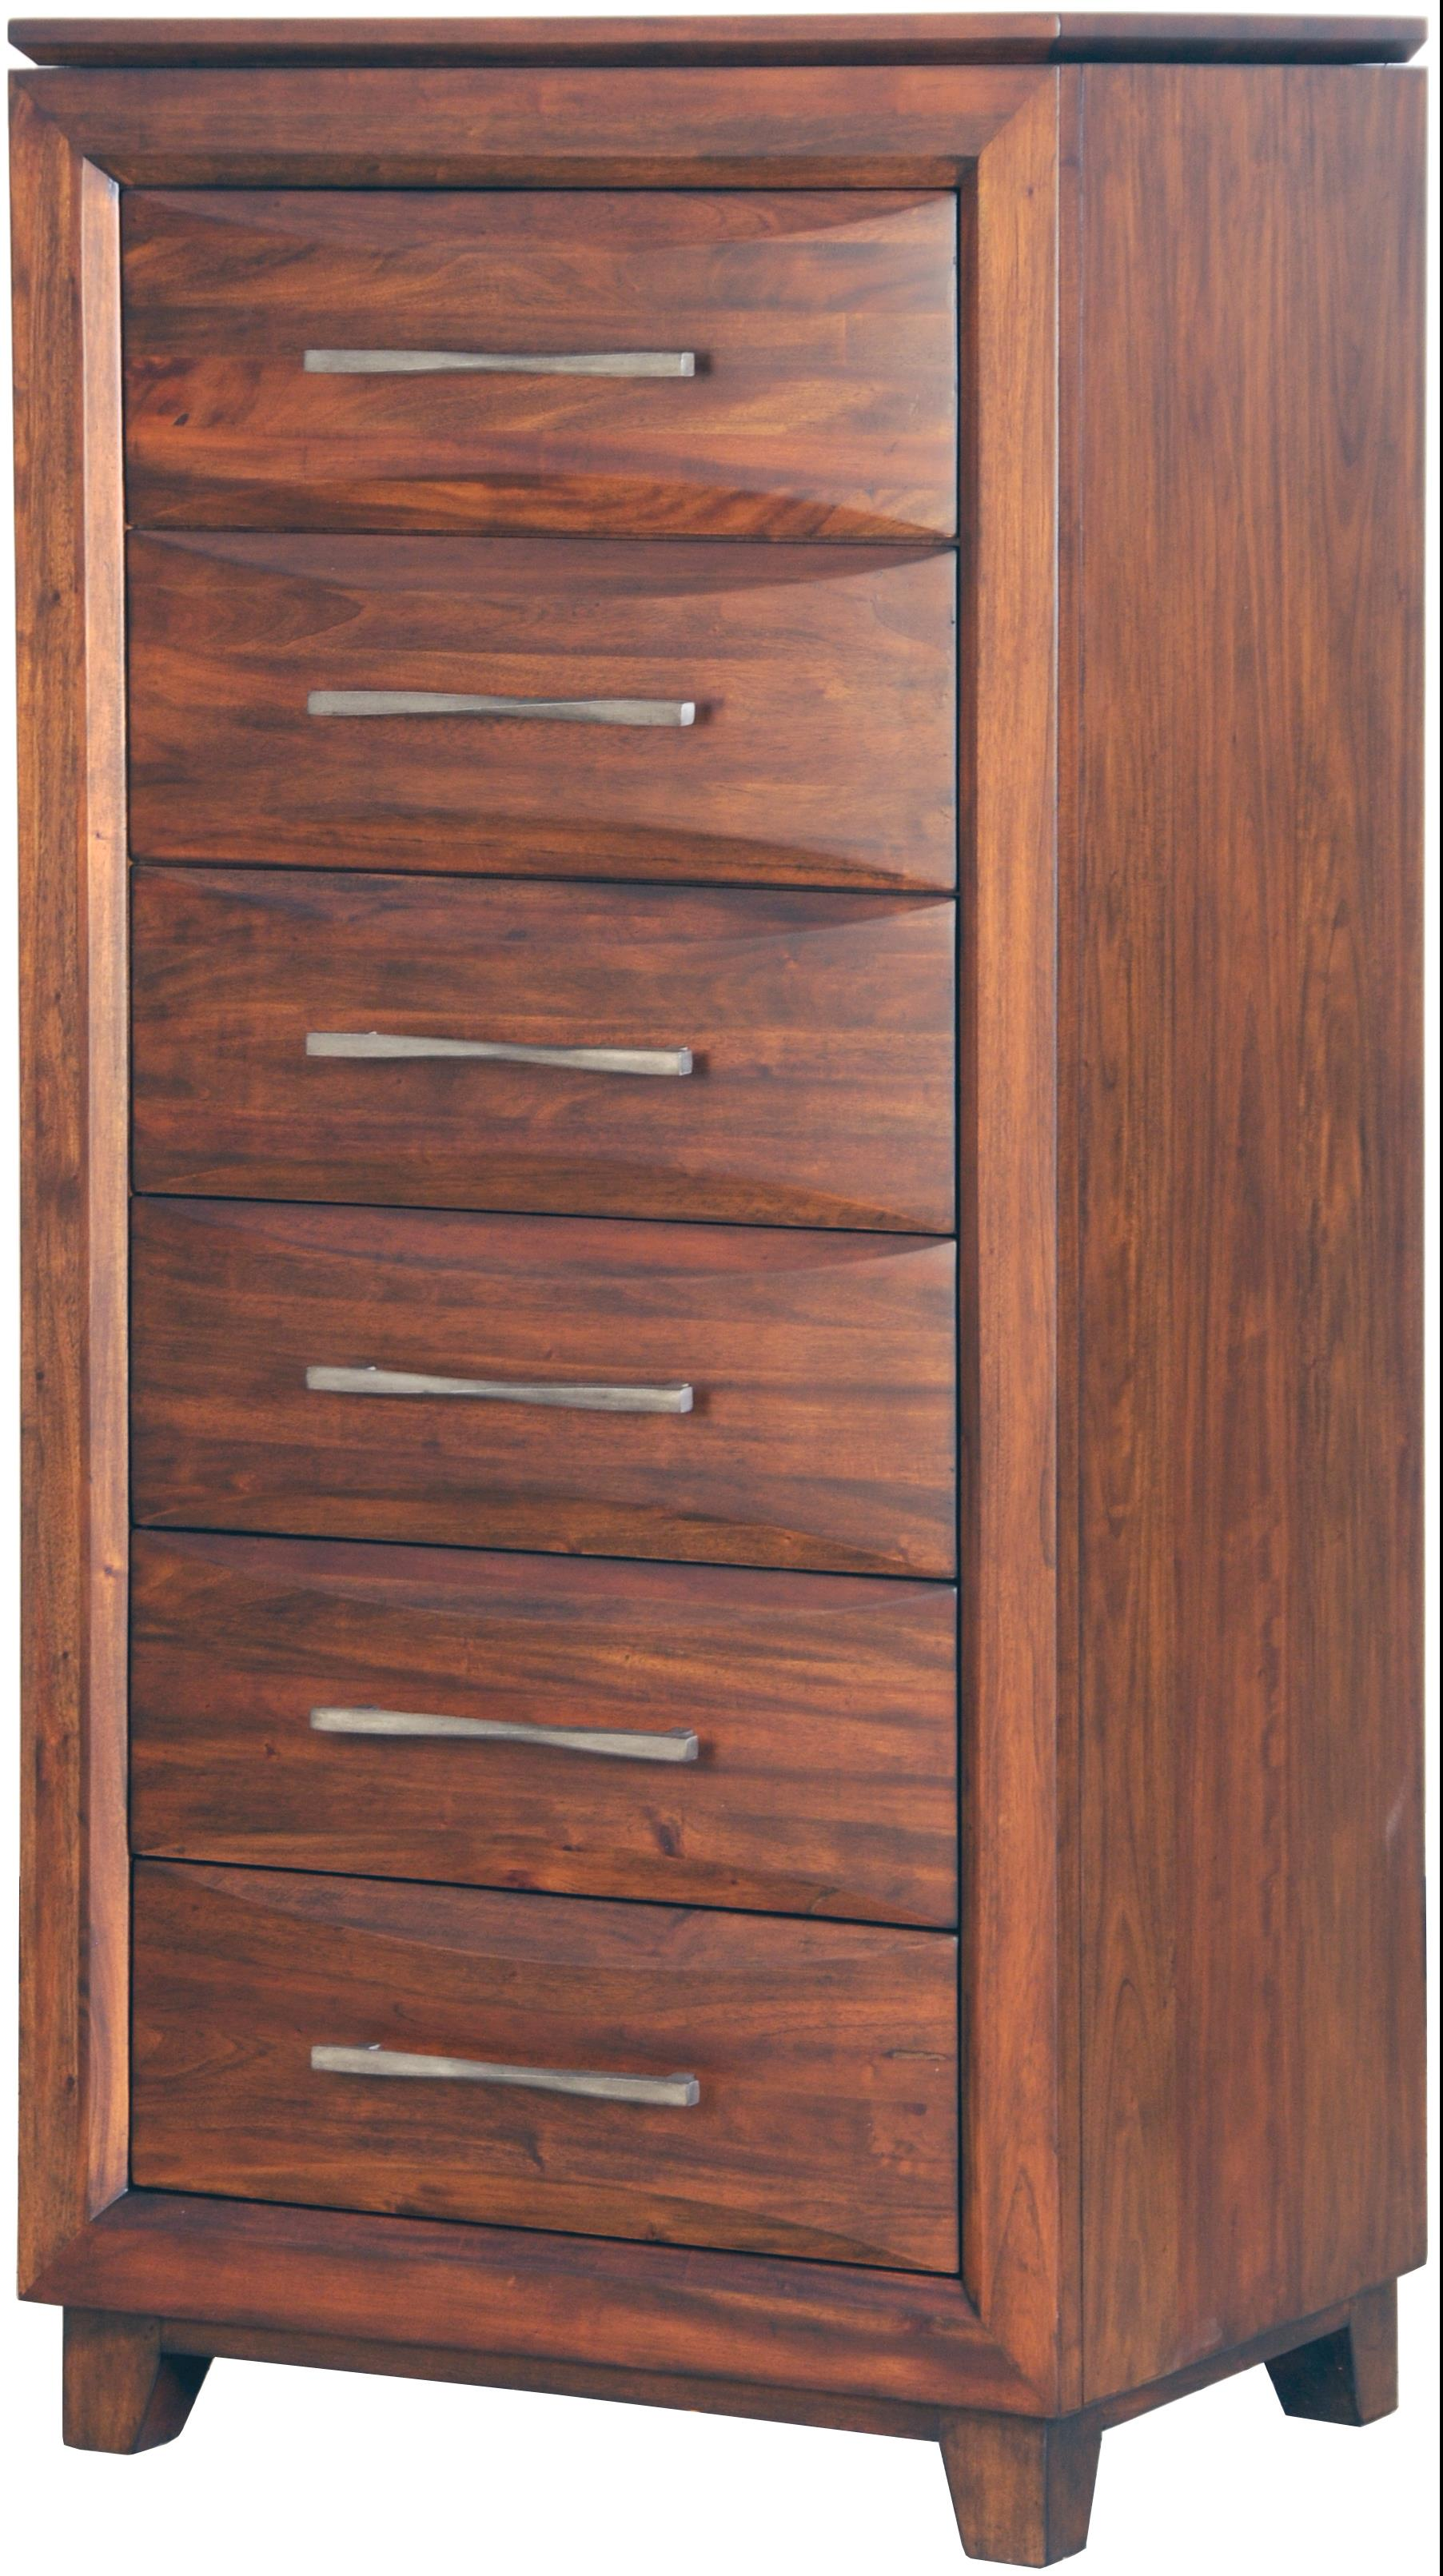 Riviera 6 x Drawer Lingerie Chest by Harris Furniture at Powell's Furniture and Mattress